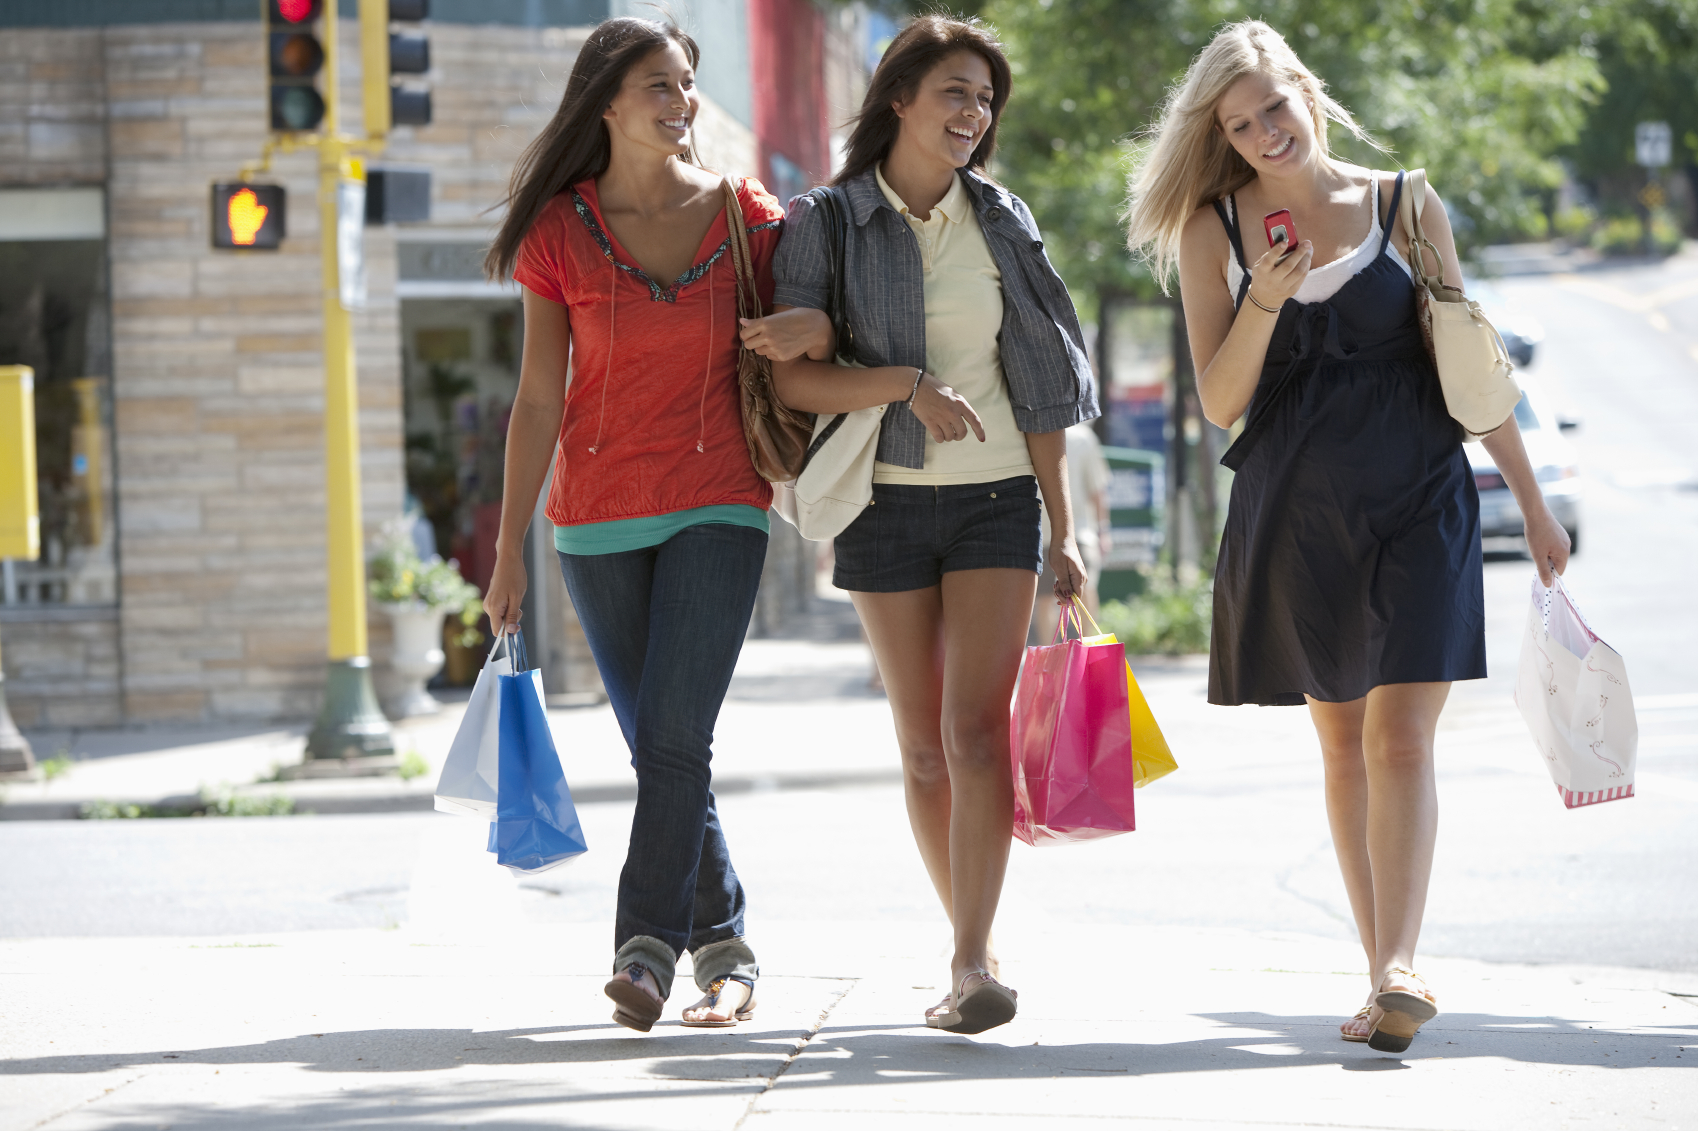 Smartphones will Influence $689 Billion in Retail Store Sales by 2016